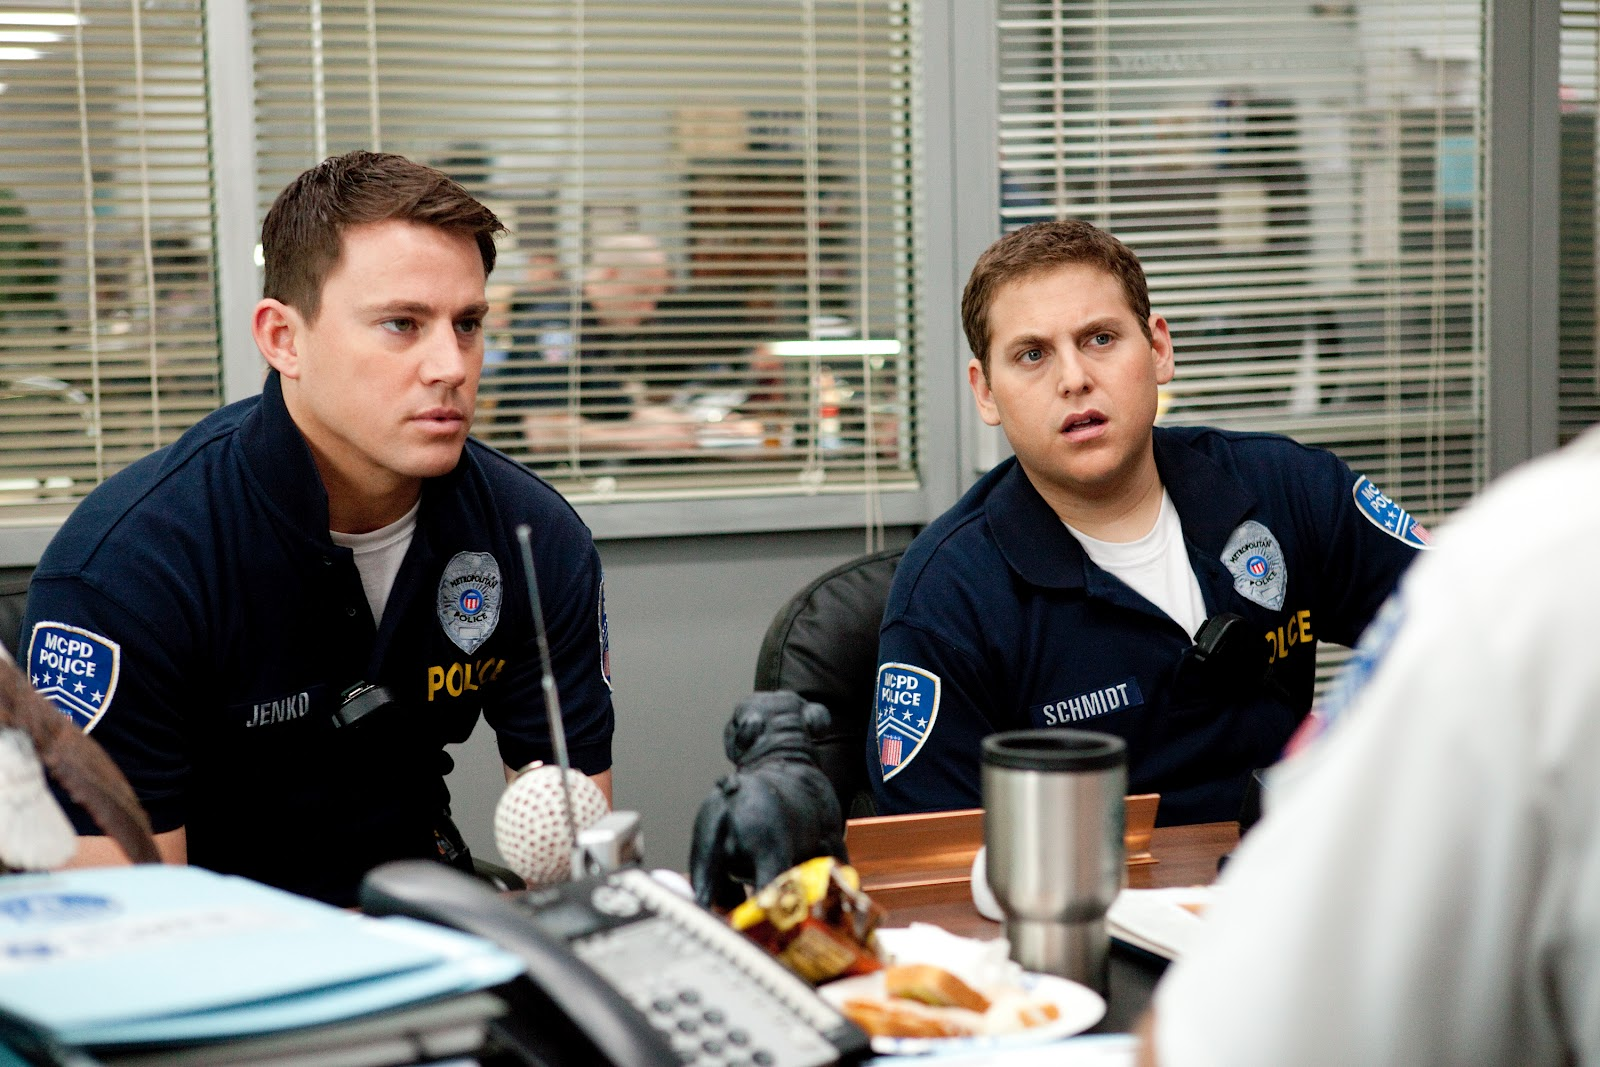 darren s world of entertainment jump street movie review 21 jump street movie review